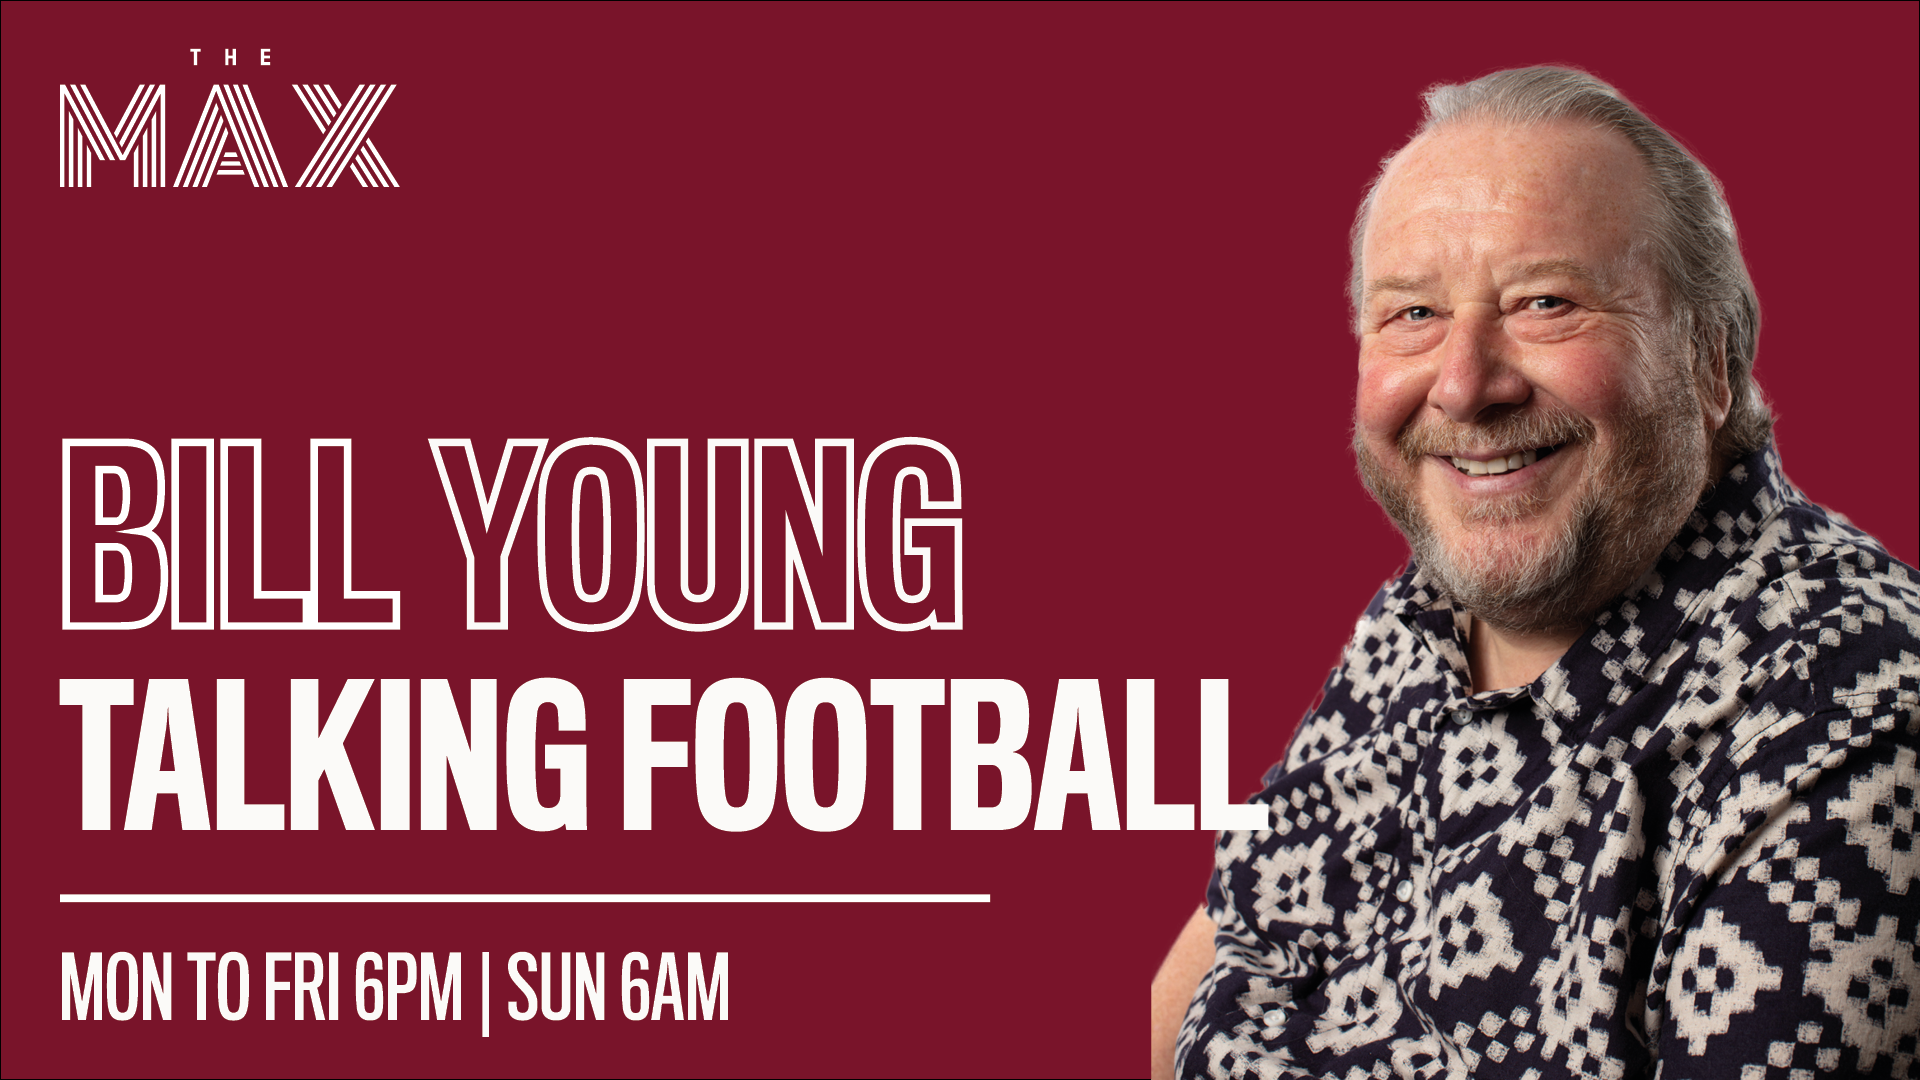 Talking Football with Bill Young - Wednesday 3rd February